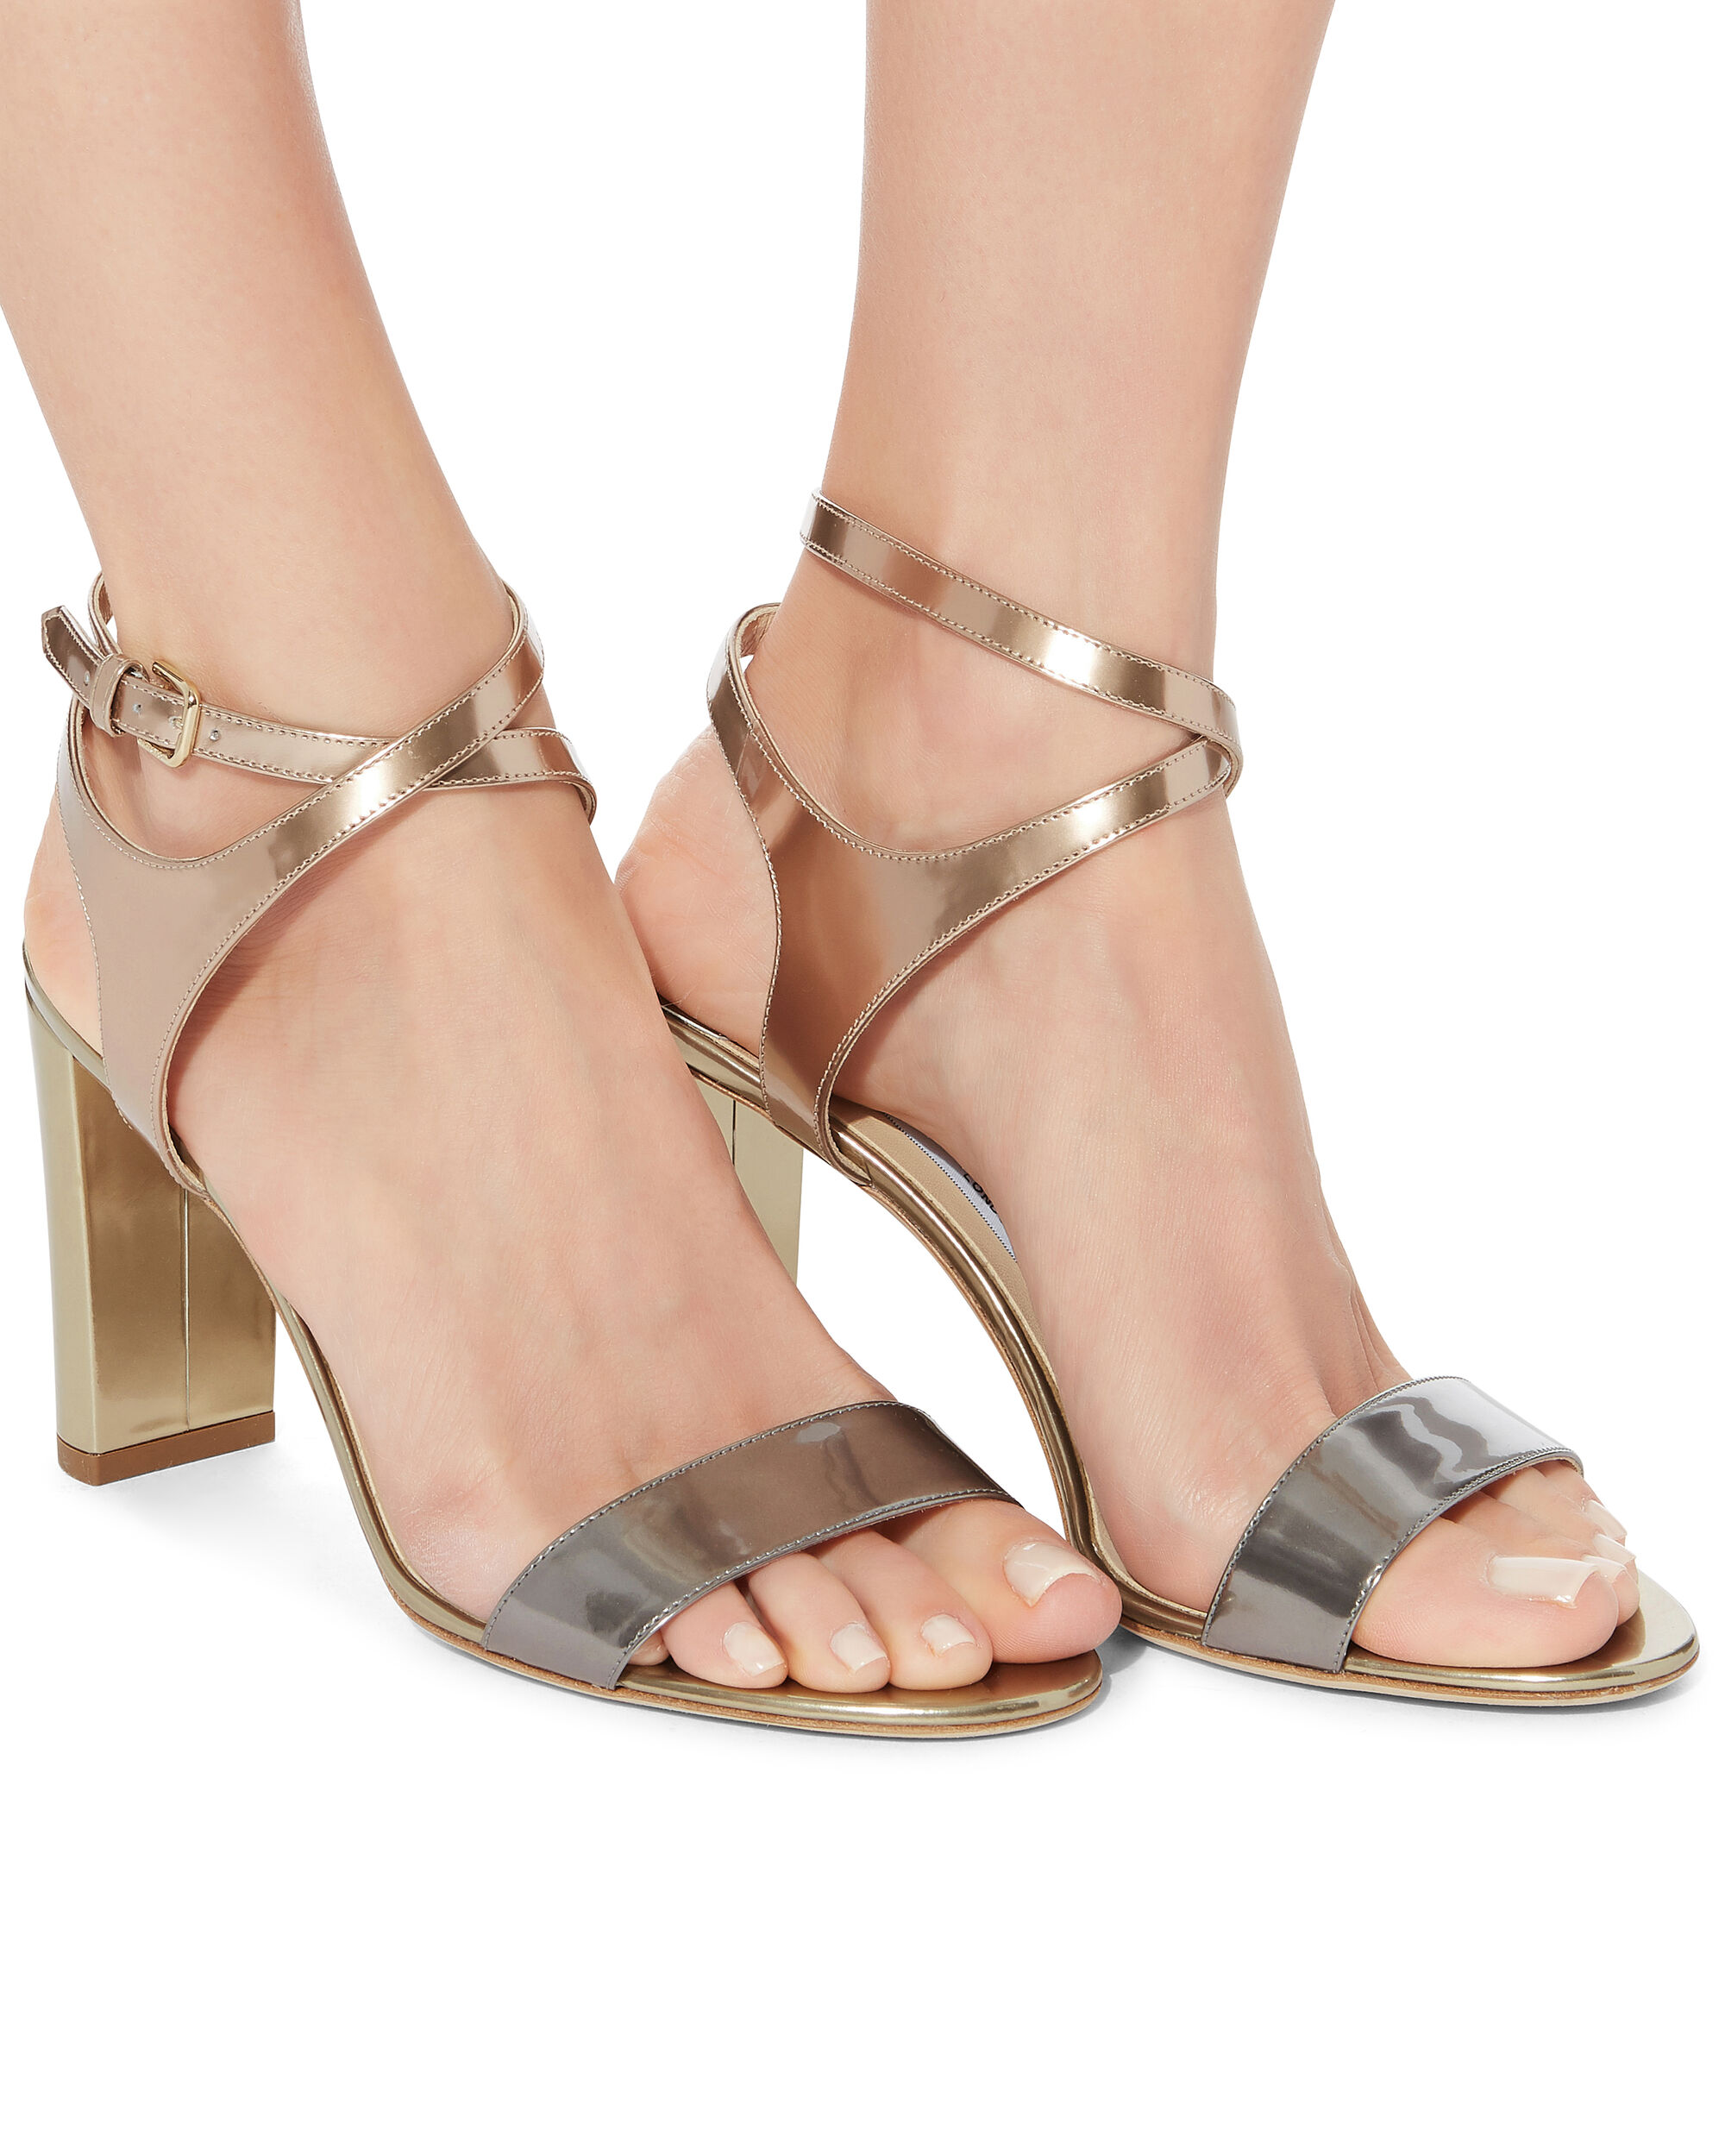 Marine Metallic High Sandals, GOLD, hi-res